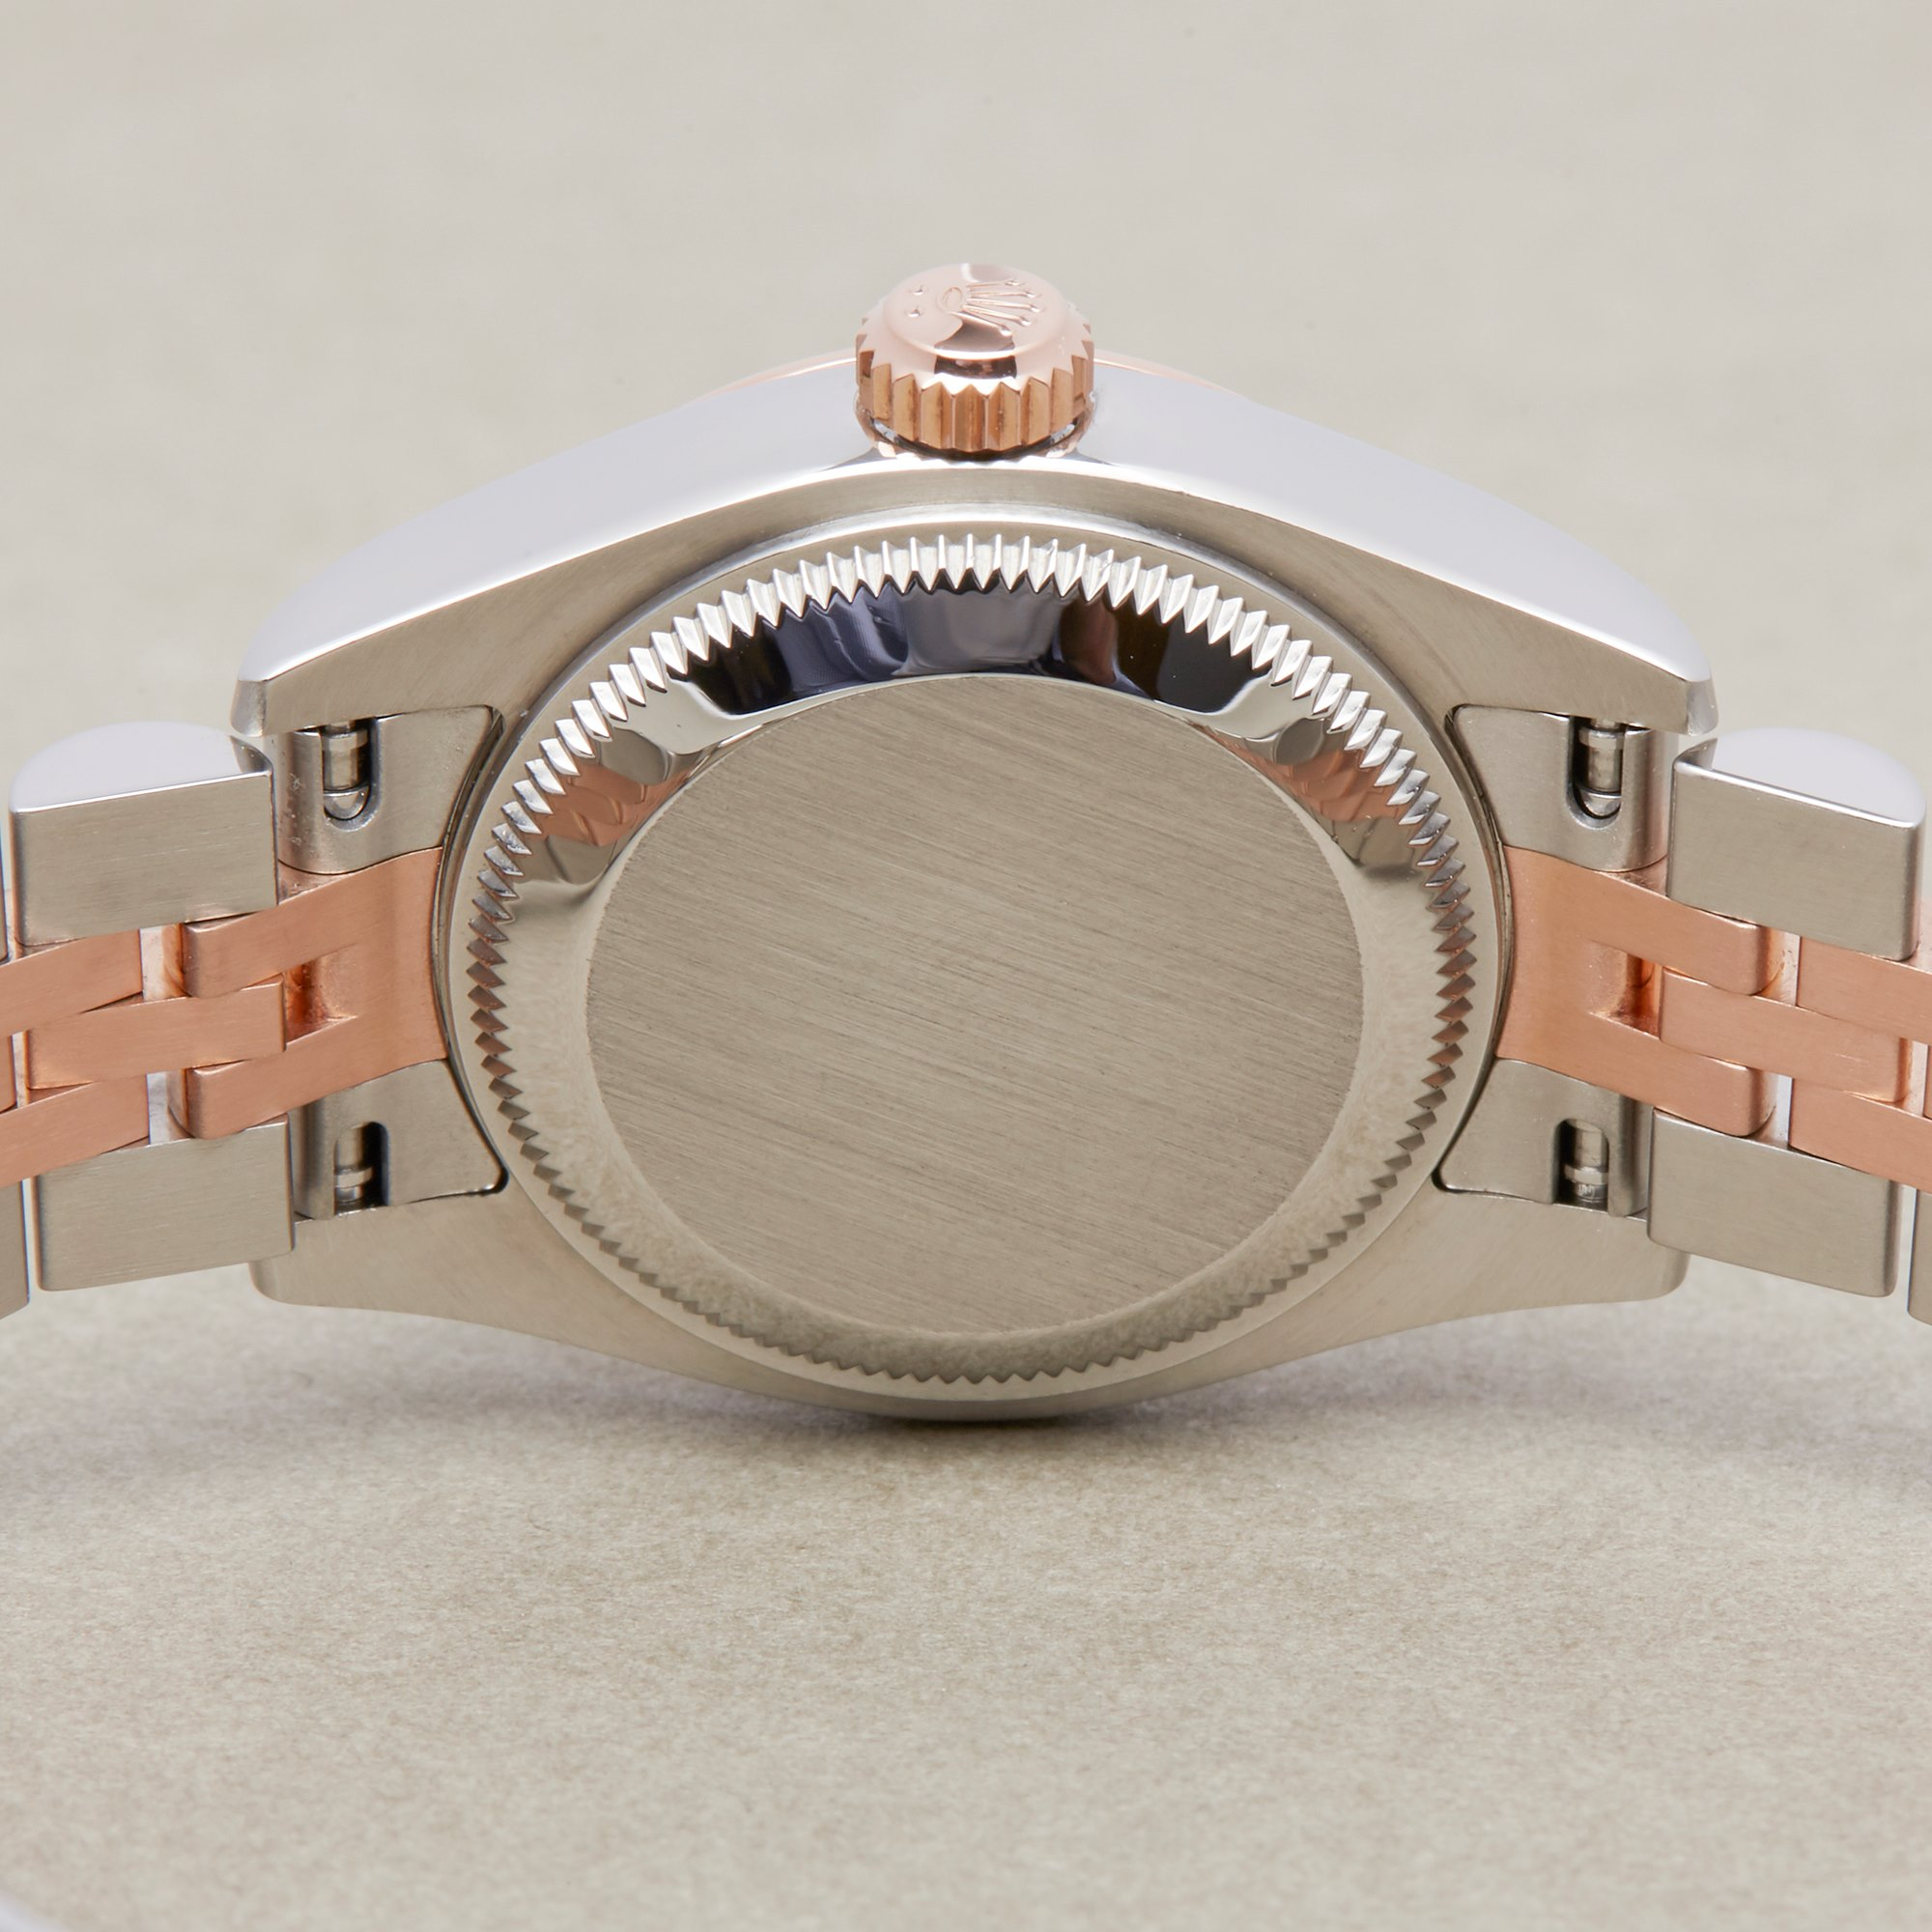 Rolex Datejust 26 179171 Ladies Rose Gold & Stainless Steel Watch - Image 8 of 10